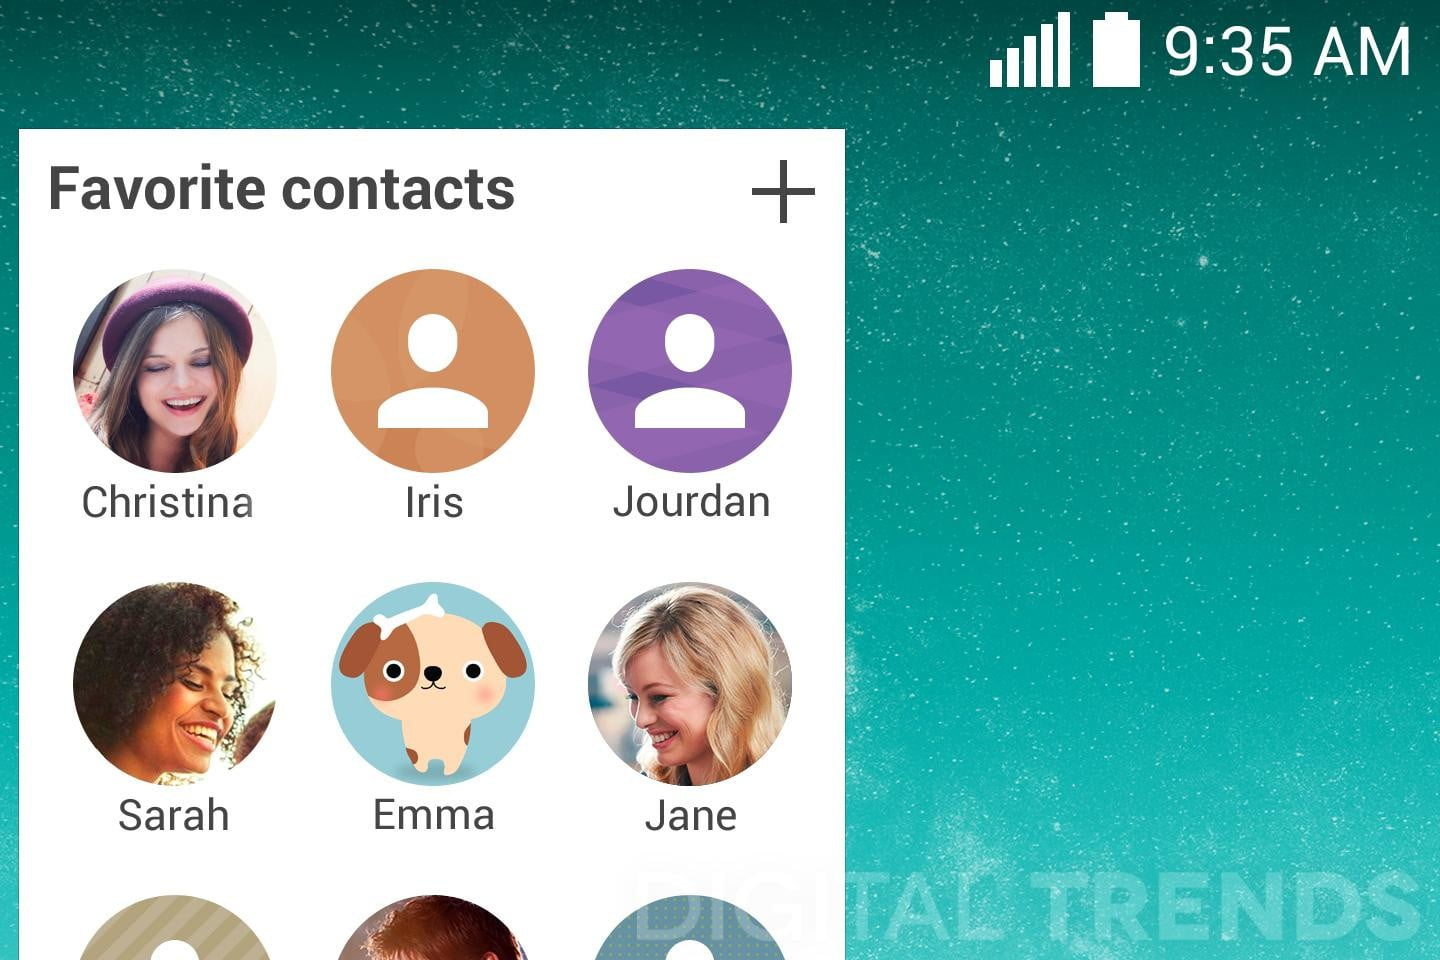 lg g3 homescreen screenshots leak exclusive favorite contacts macro 2